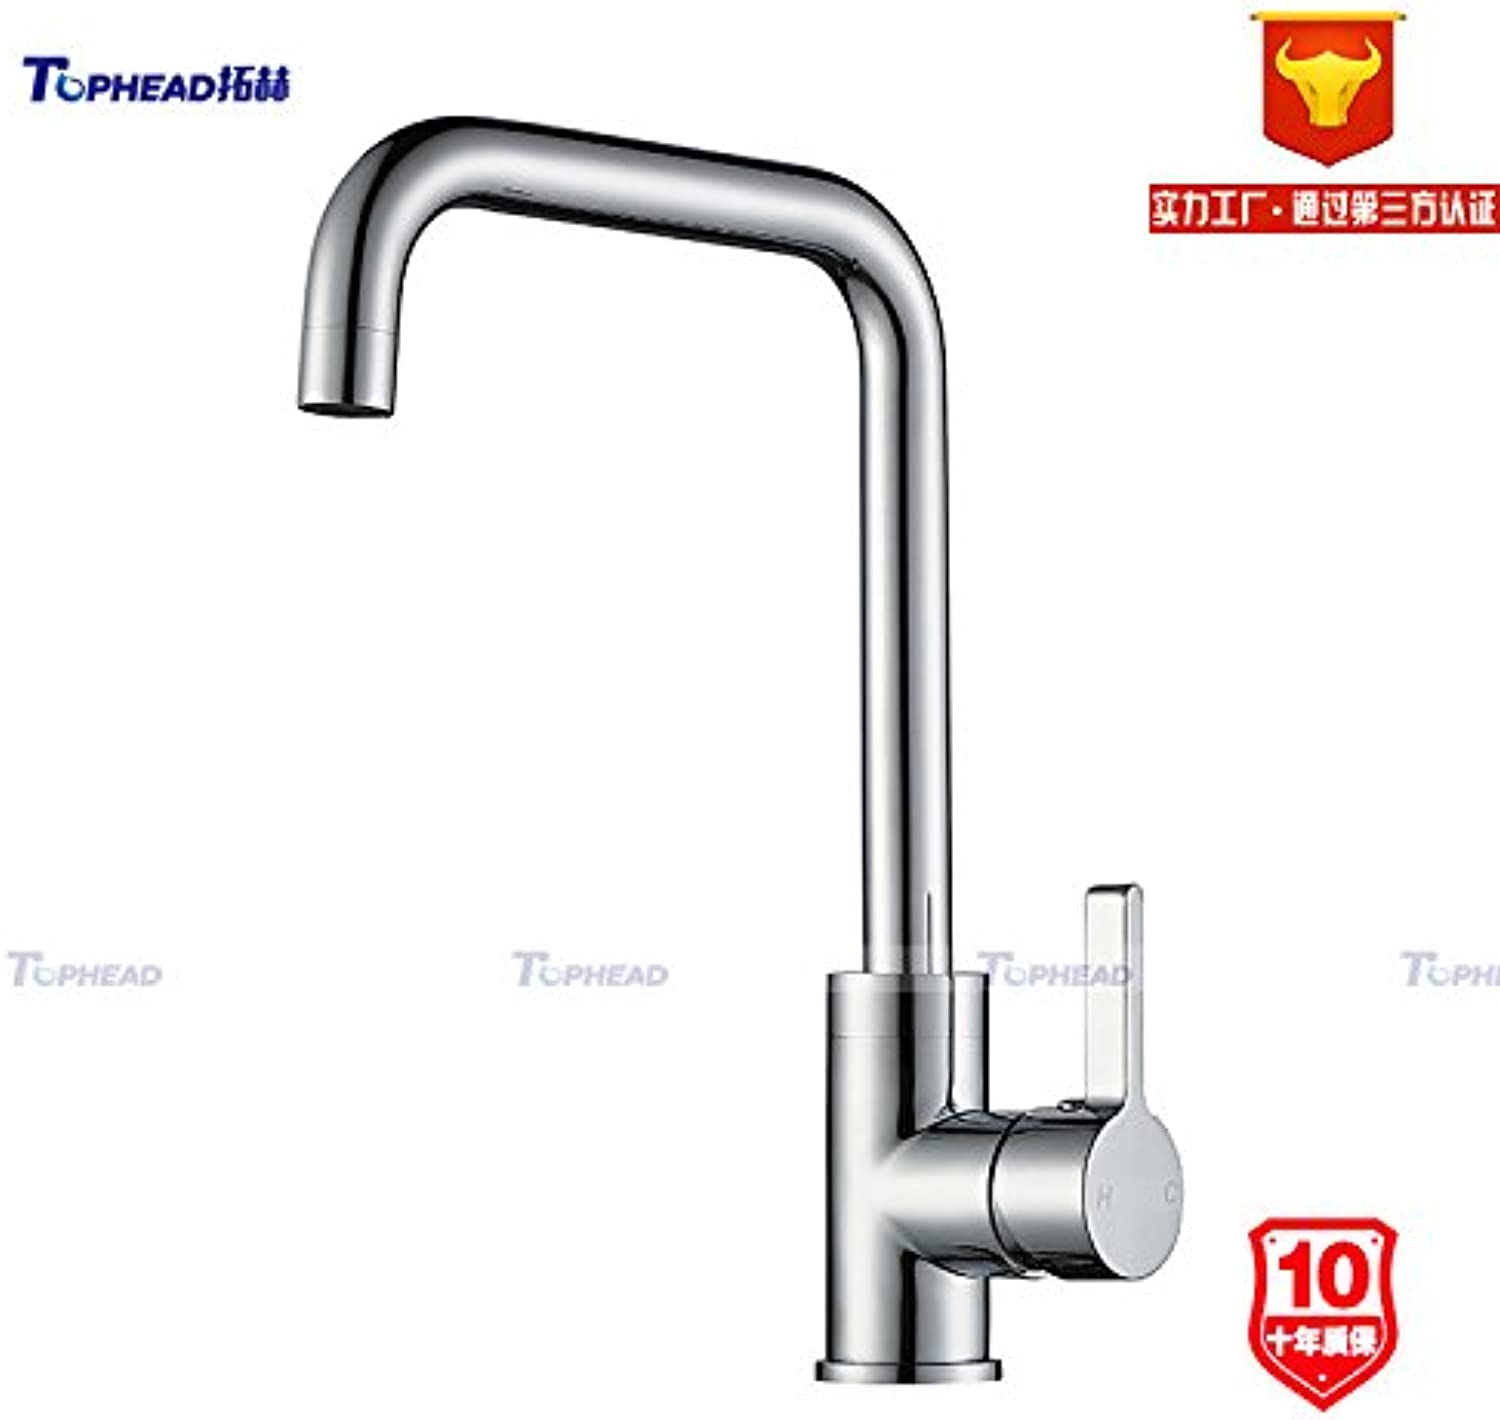 Commercial Single Lever Pull Down Kitchen Sink Faucet Brass Constructed Polished Copper Chrome Kitchen hot and Cold Sink Sink Faucet Bathroom Basin,SH003-6